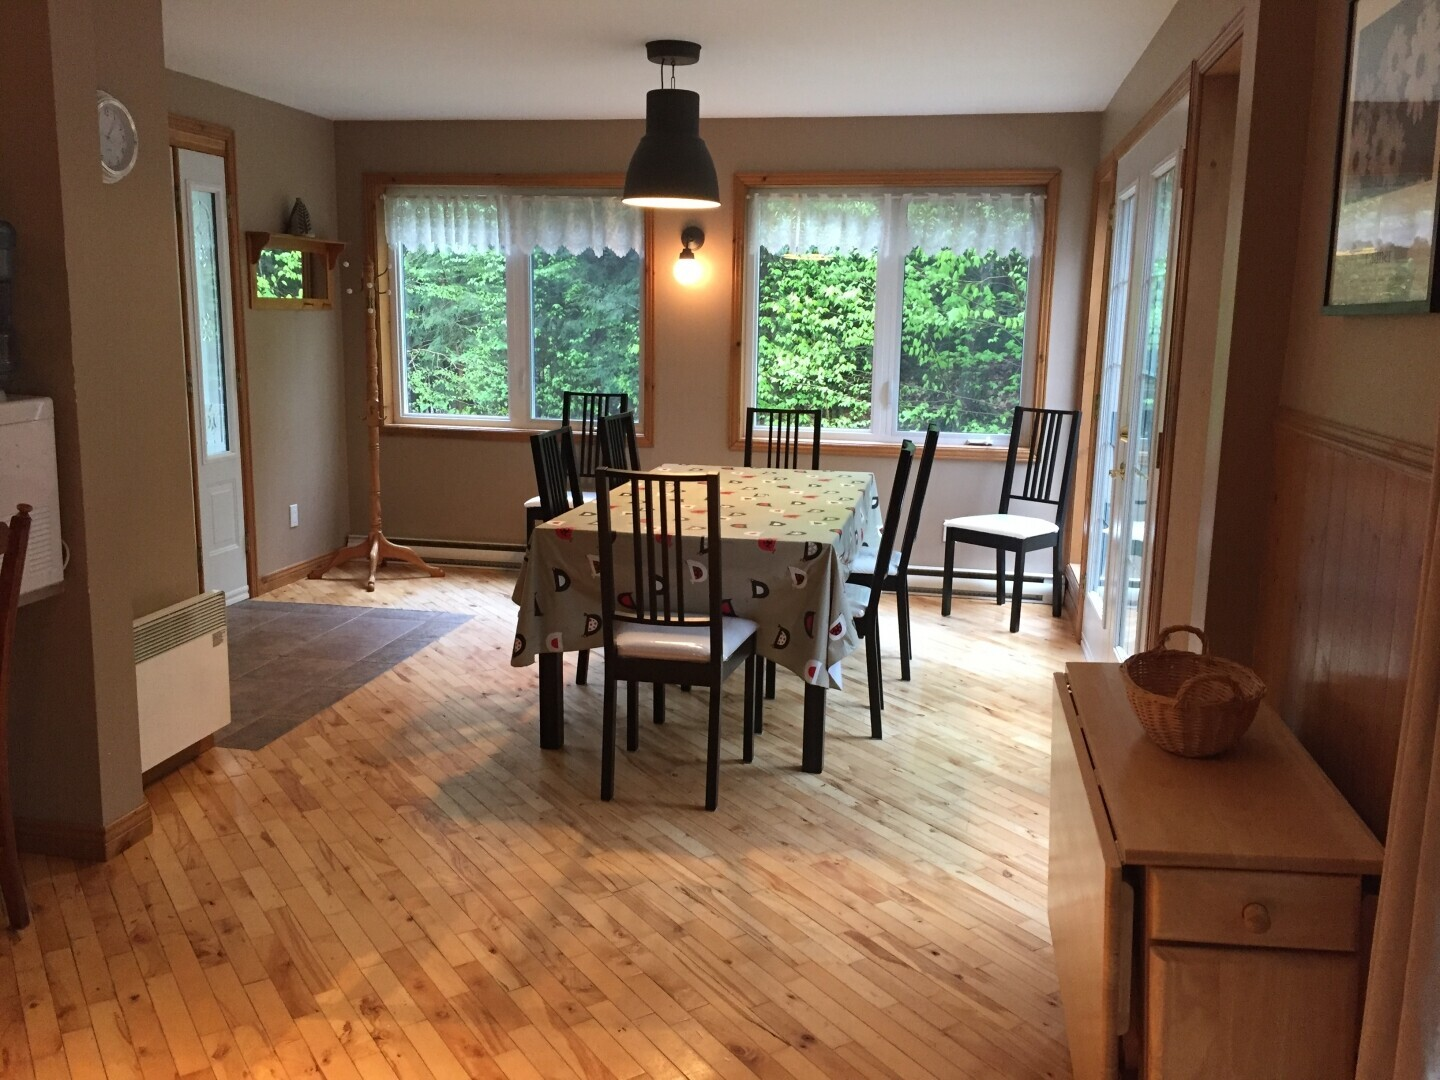 Location du chalet ste flore shawinigan shawinigan for Salle a manger in english